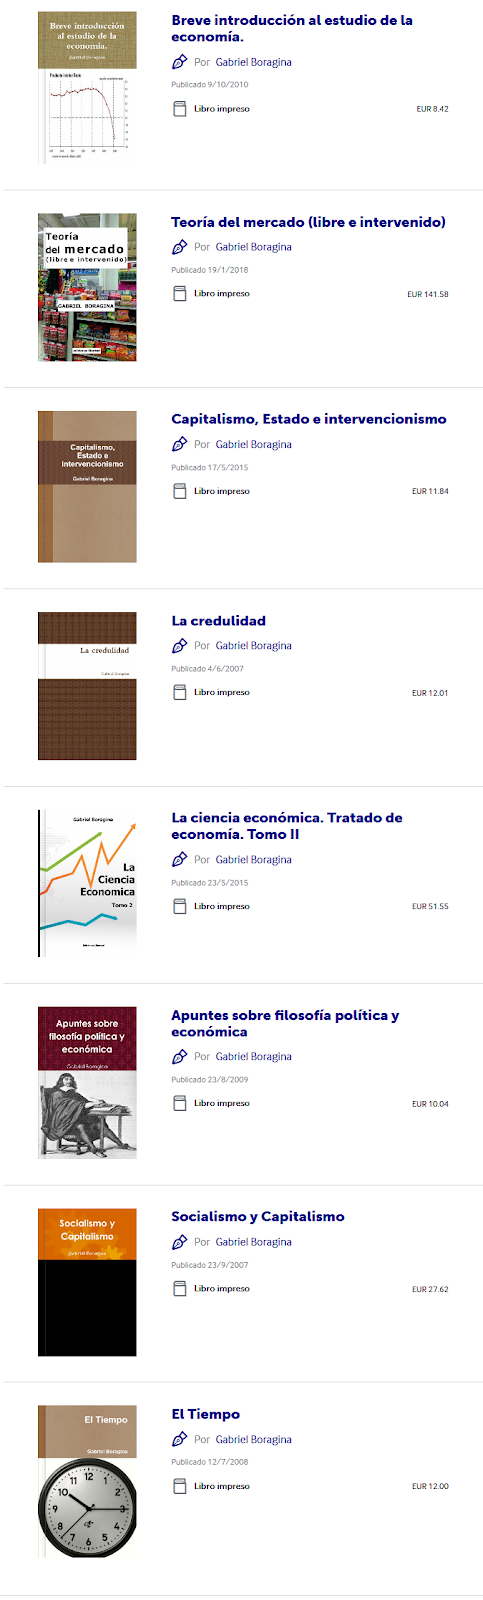 https://www.lulu.com/es/search/?adult_audience_rating=00&contributor=Gabriel+Boragina&page=1&pageSize=10